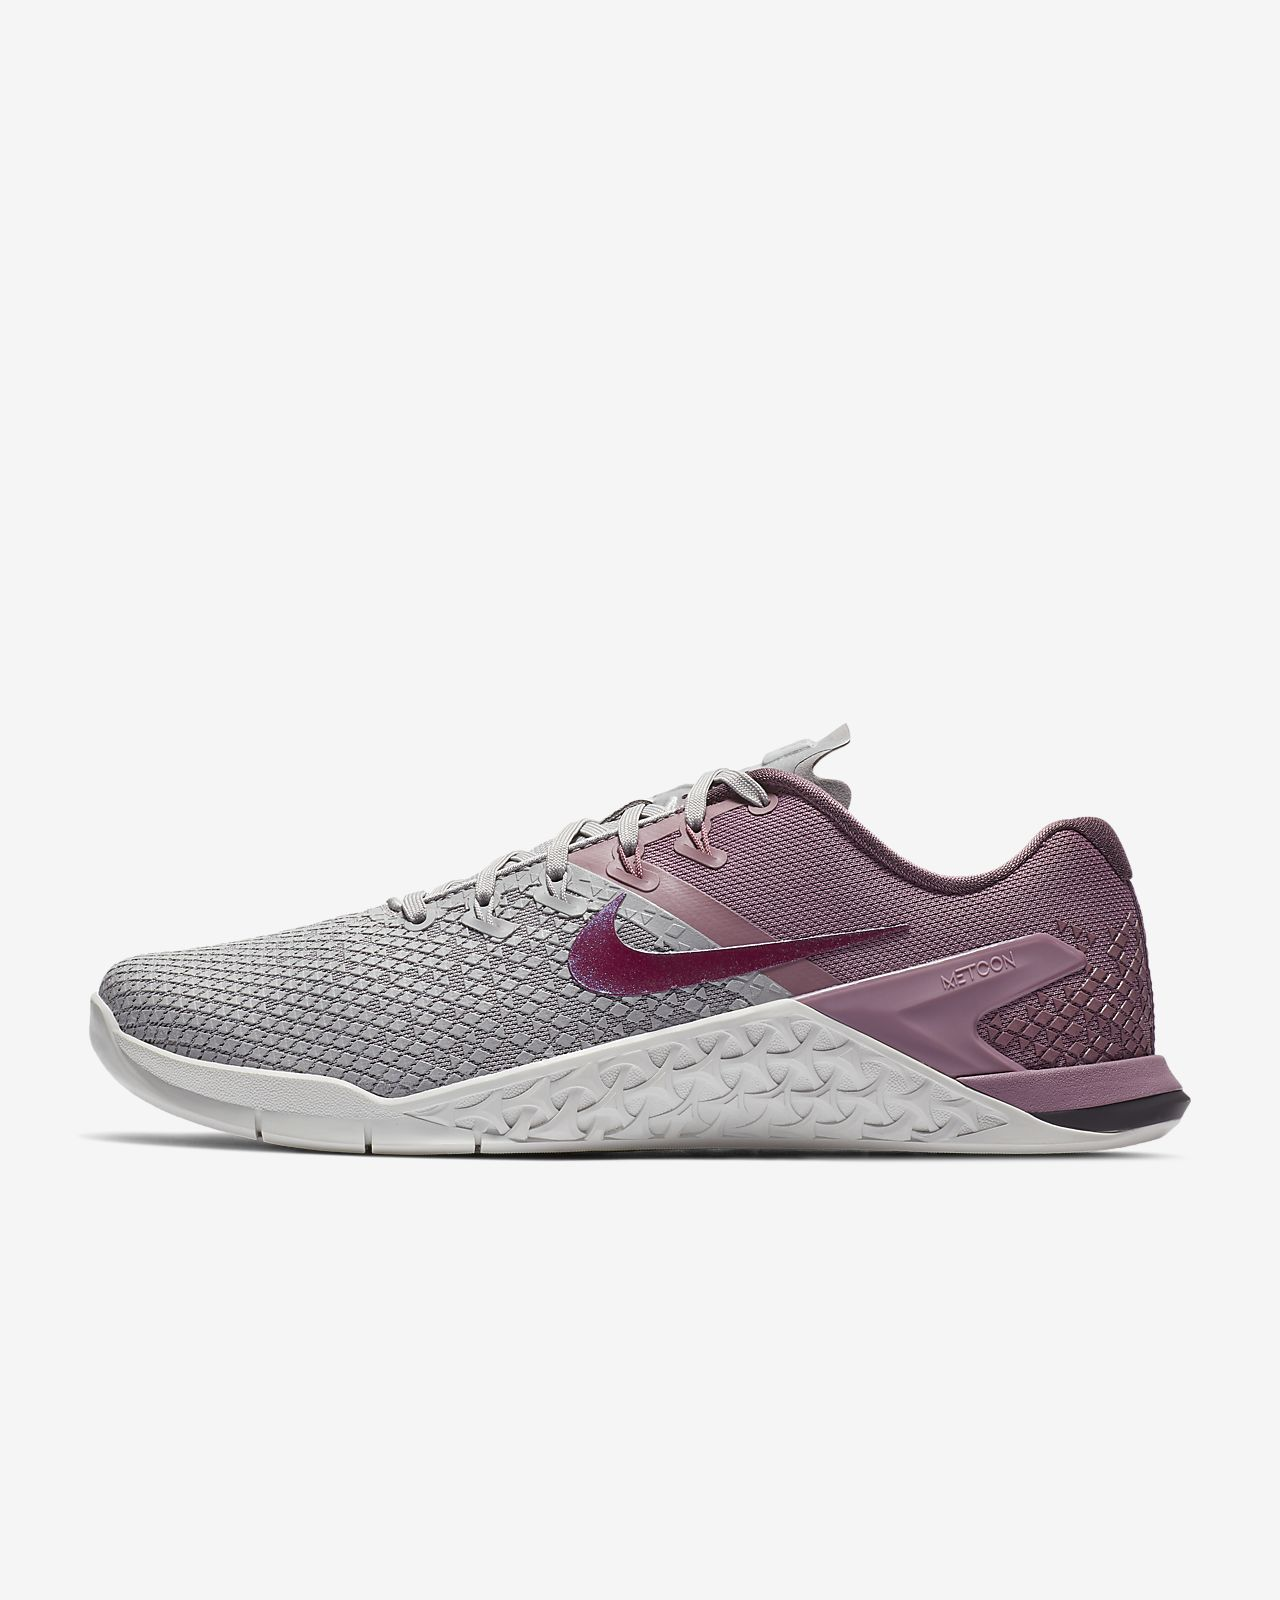 Nike Metcon 4 XD Women s Cross Training Weightlifting Shoe. Nike.com b57af8557b2